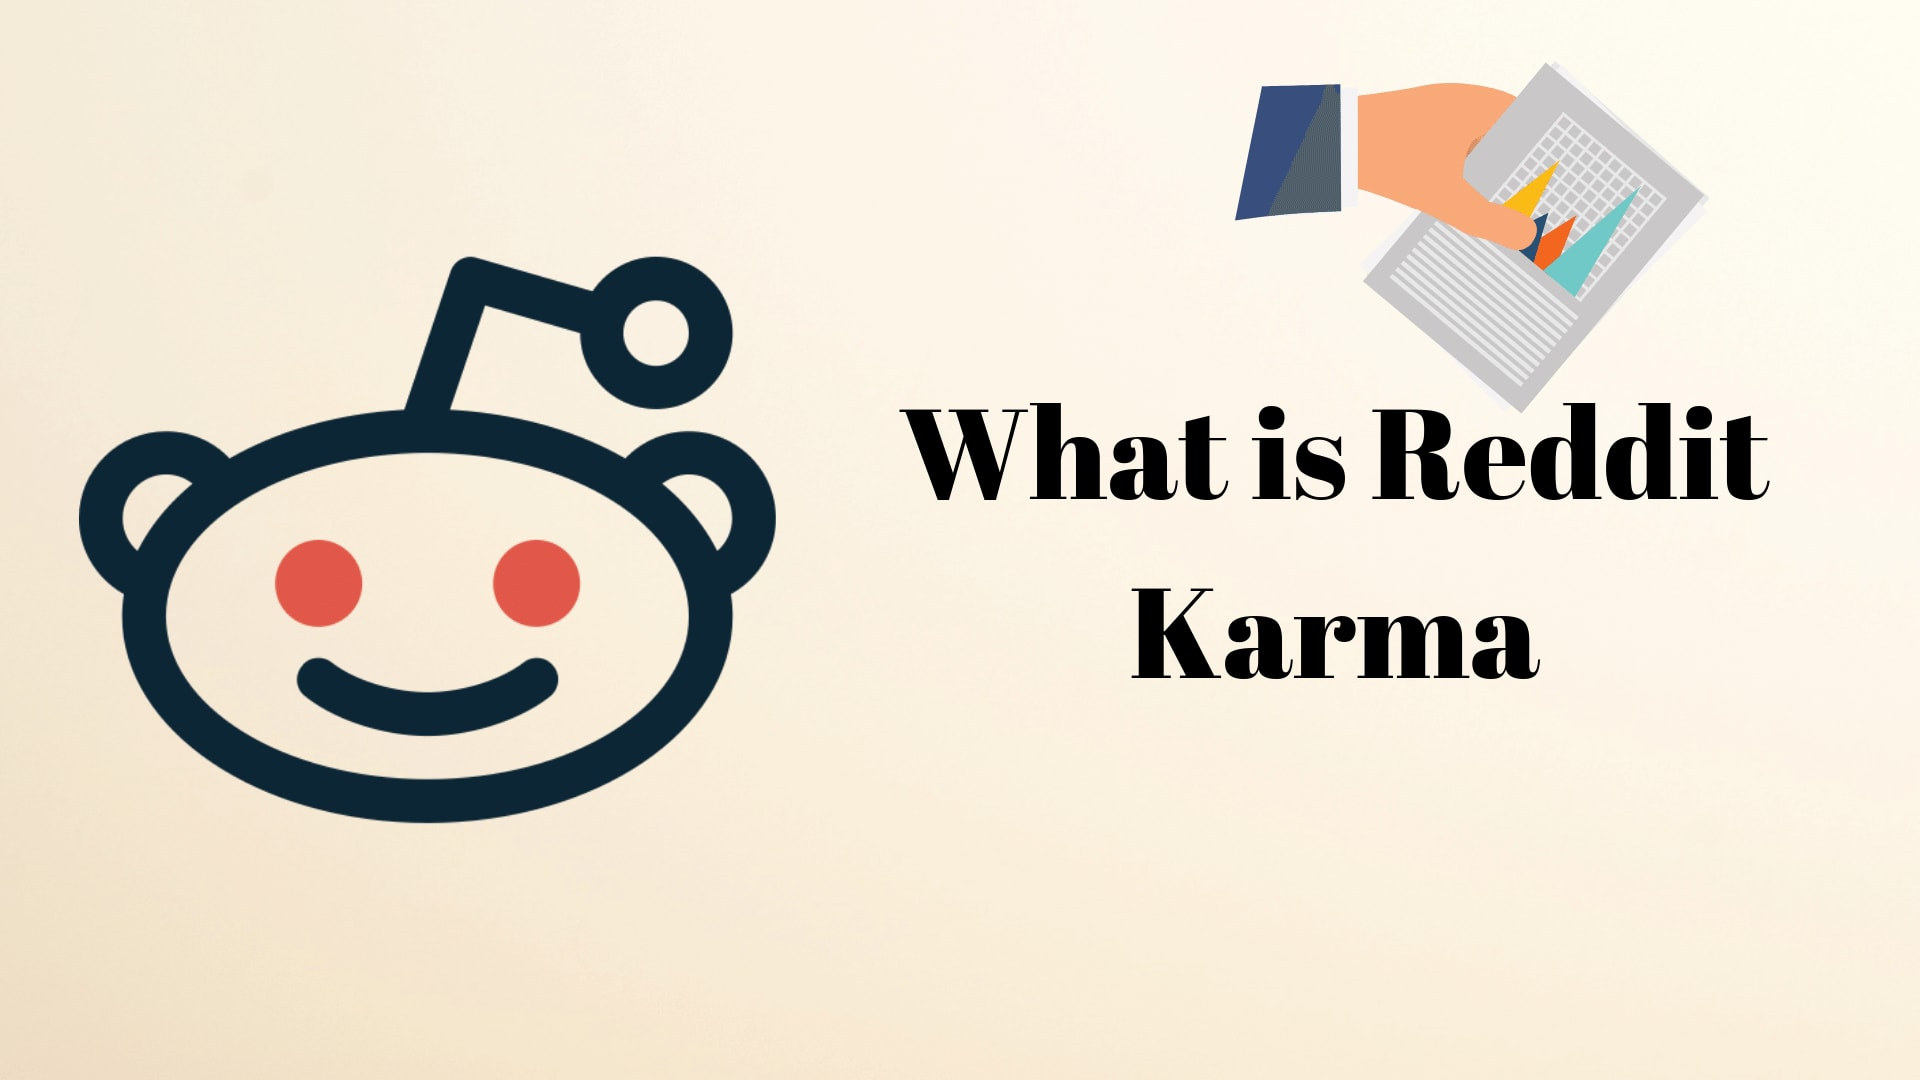 What is Reddit Karma and Reddit Gold?